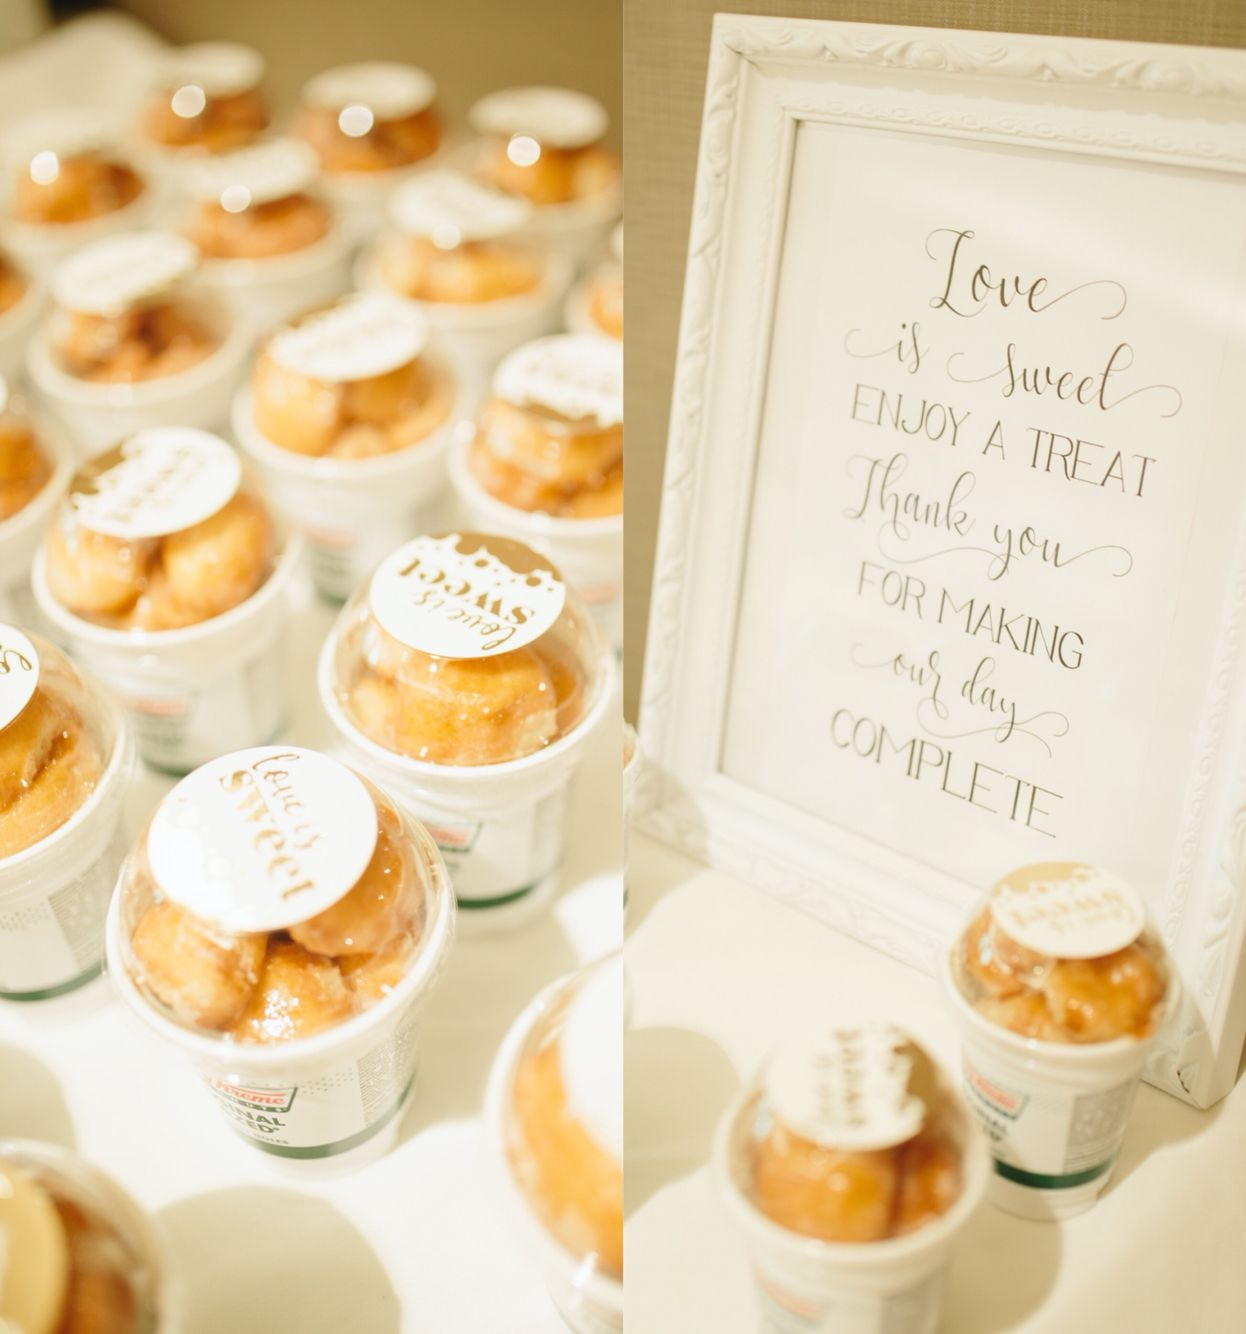 Our wedding favors we\'re Krispy Kreme\'s donut holes because of two ...